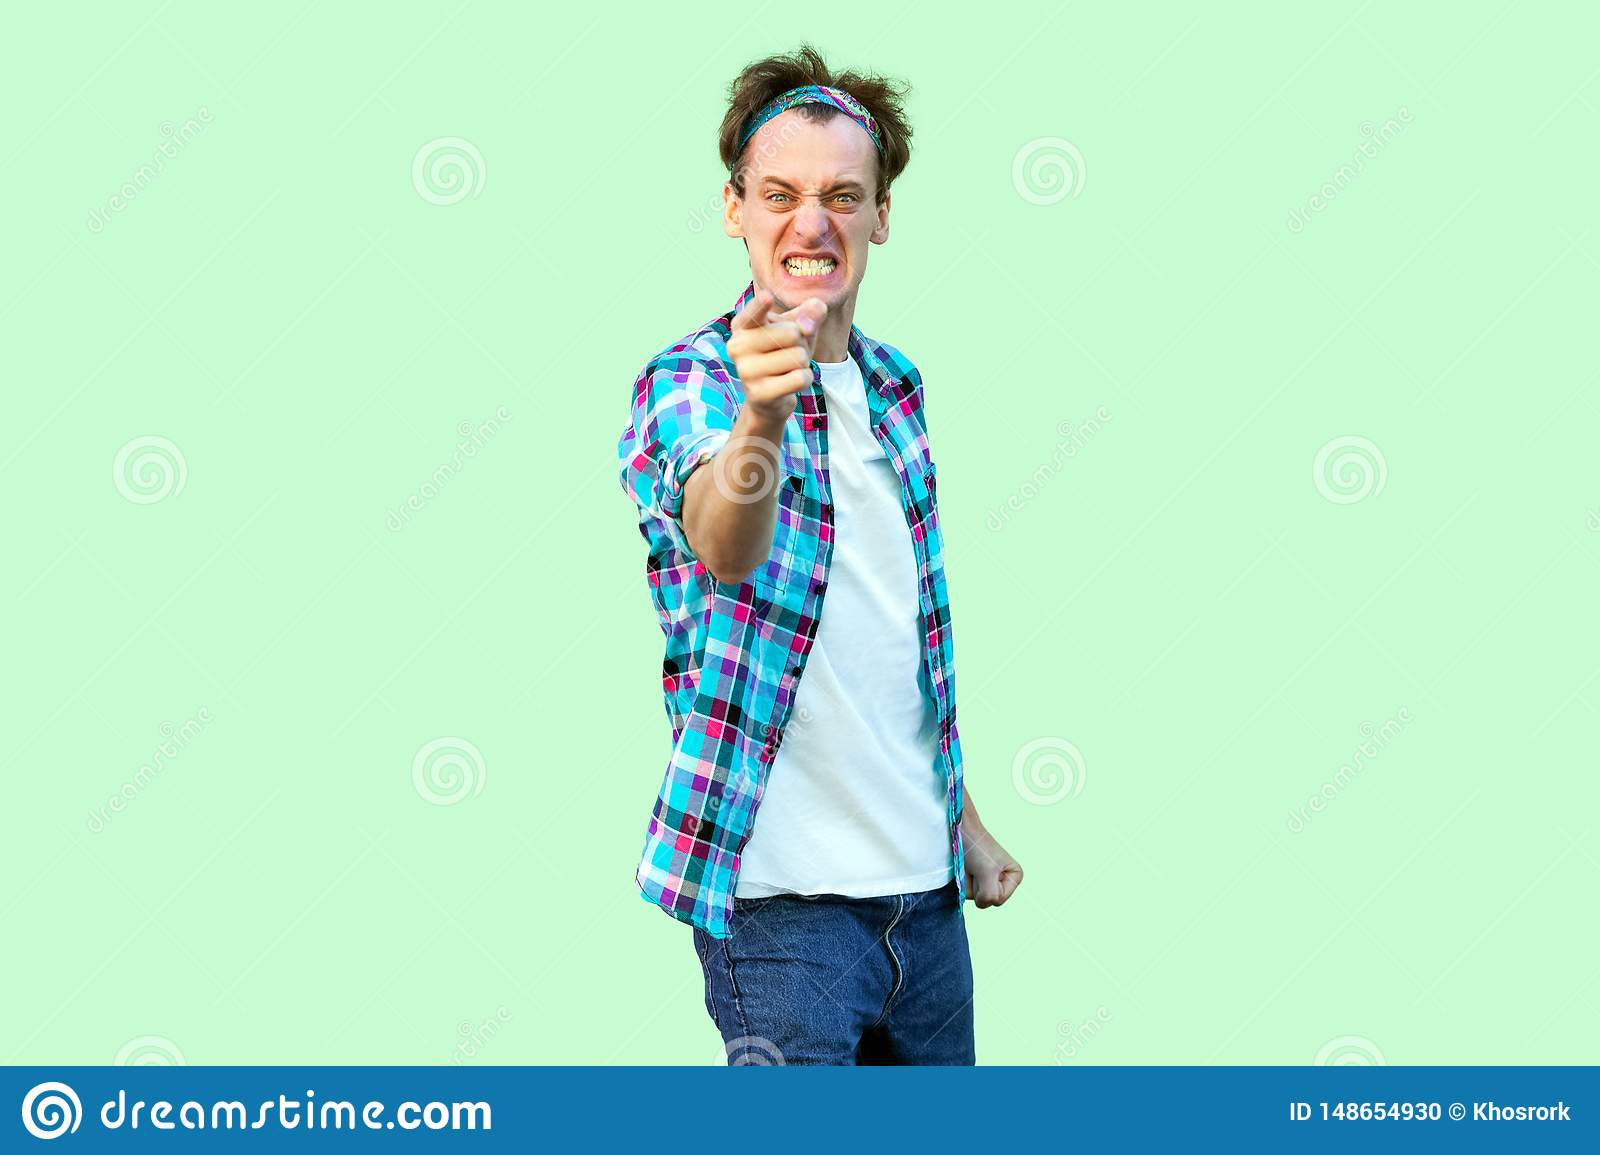 Portrait of angry nervous young man in casual blue checkered shirt and headband standing, clenching teeth, blaming and looking at